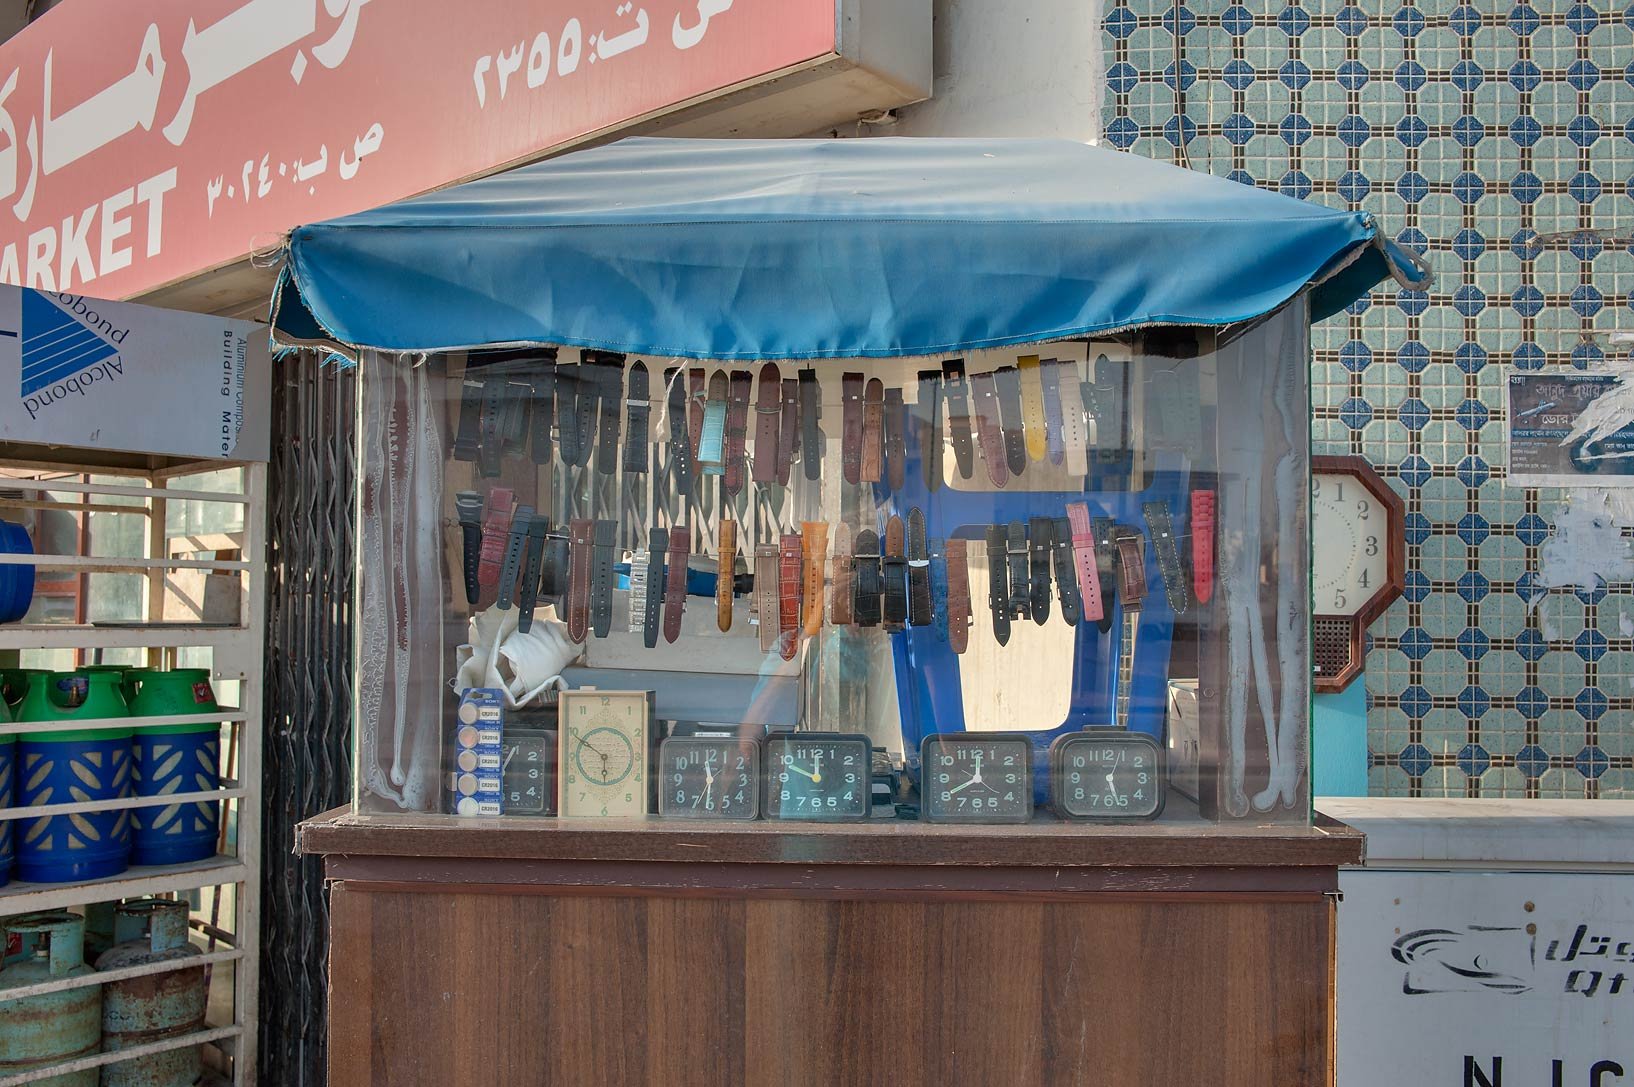 Watch repair kiosk on Al Mansoura St. in Najma area. Doha, Qatar